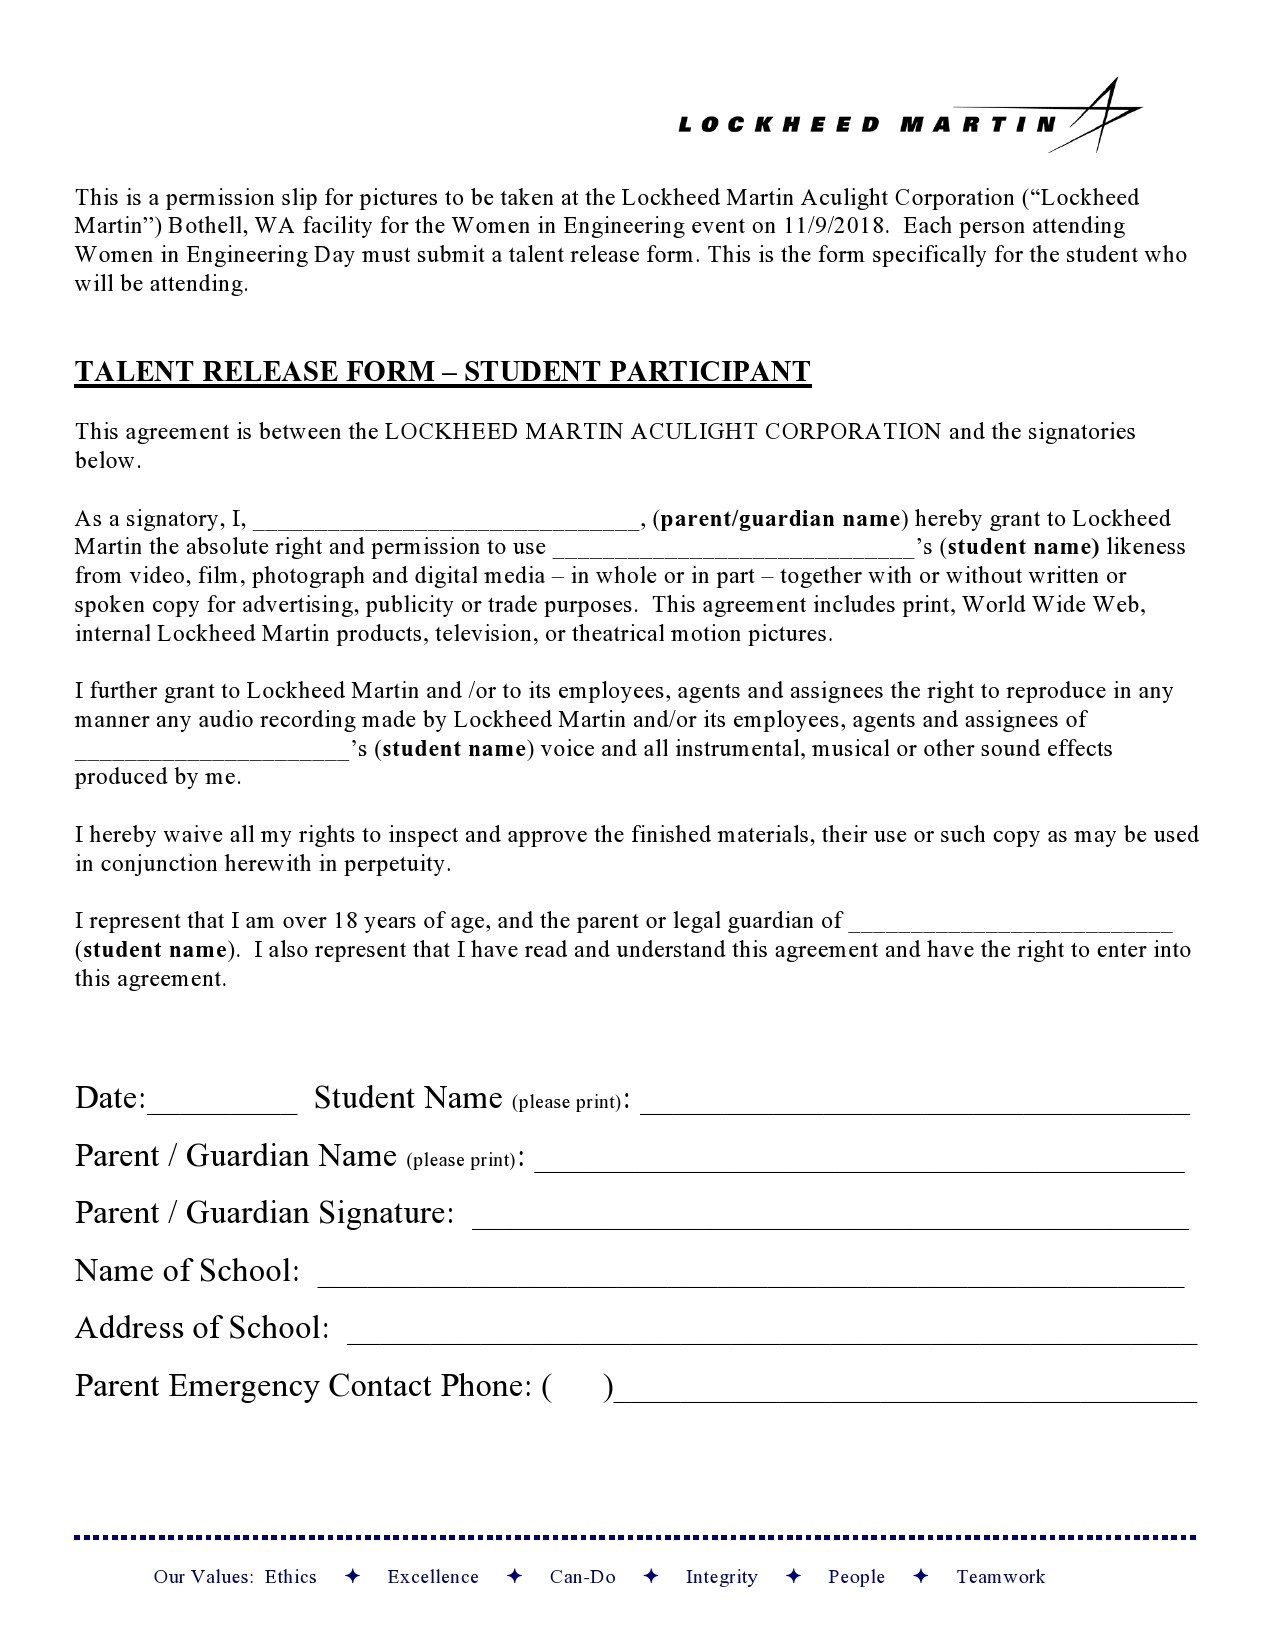 Free talent release form 15